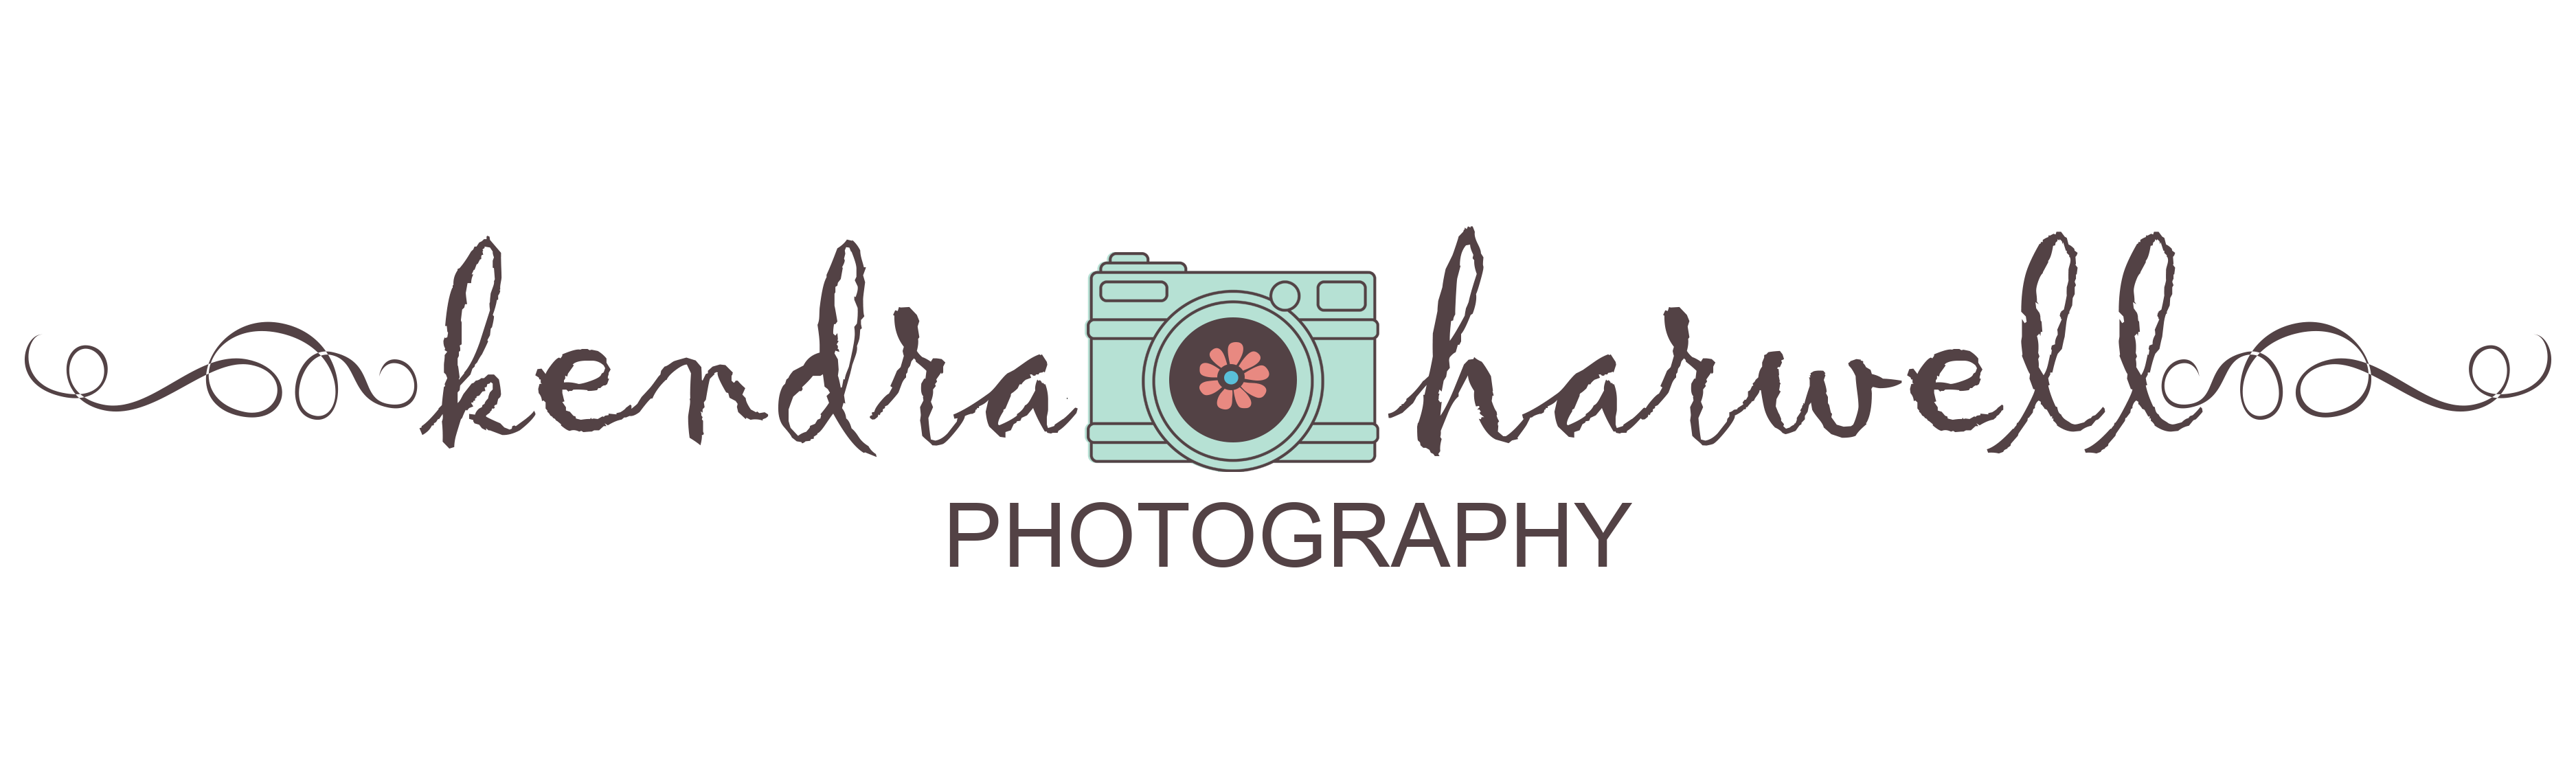 photography camera logo png 7144